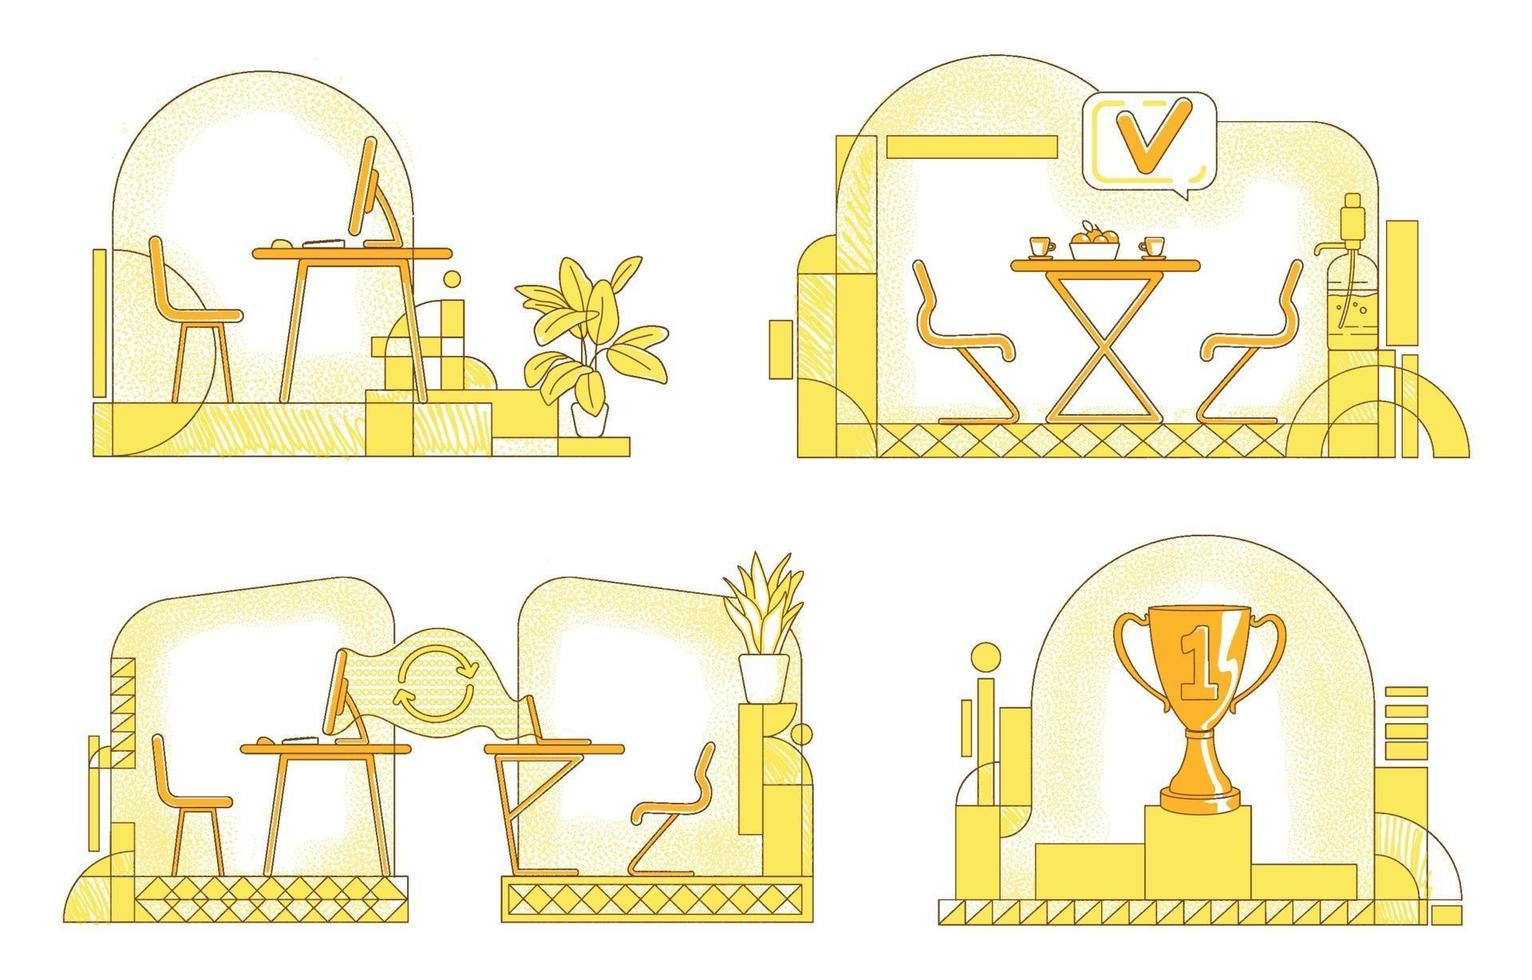 Business office flat silhouette vector illustrations set. Corporate workspace contour composition on yellow background. Personal and remote workplace, lounge zone, pedestal simple style drawings pack